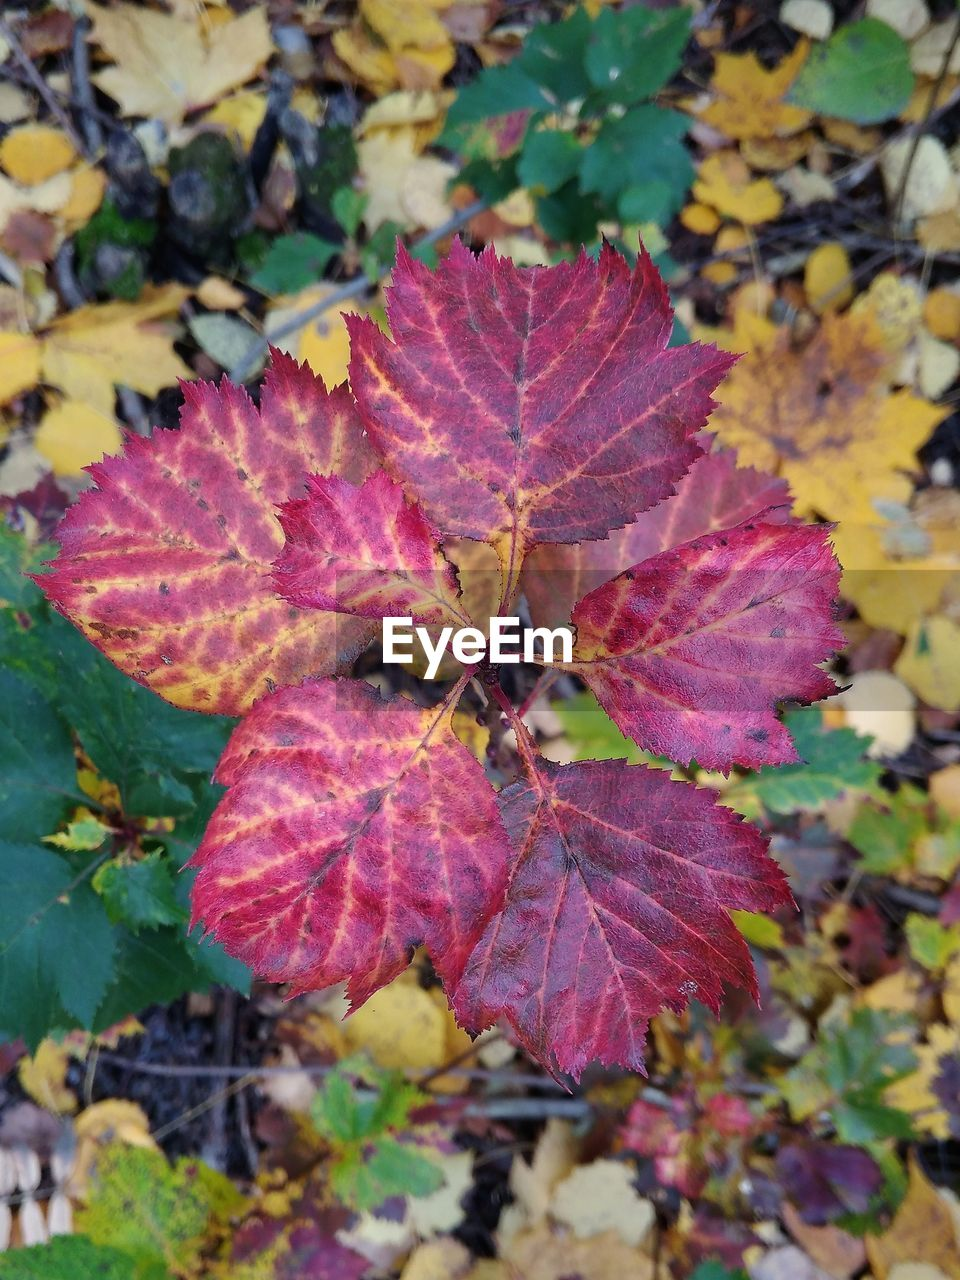 leaf, plant part, autumn, close-up, change, plant, beauty in nature, nature, no people, day, growth, focus on foreground, leaves, outdoors, vulnerability, maple leaf, fragility, tree, leaf vein, high angle view, natural condition, maroon, purple